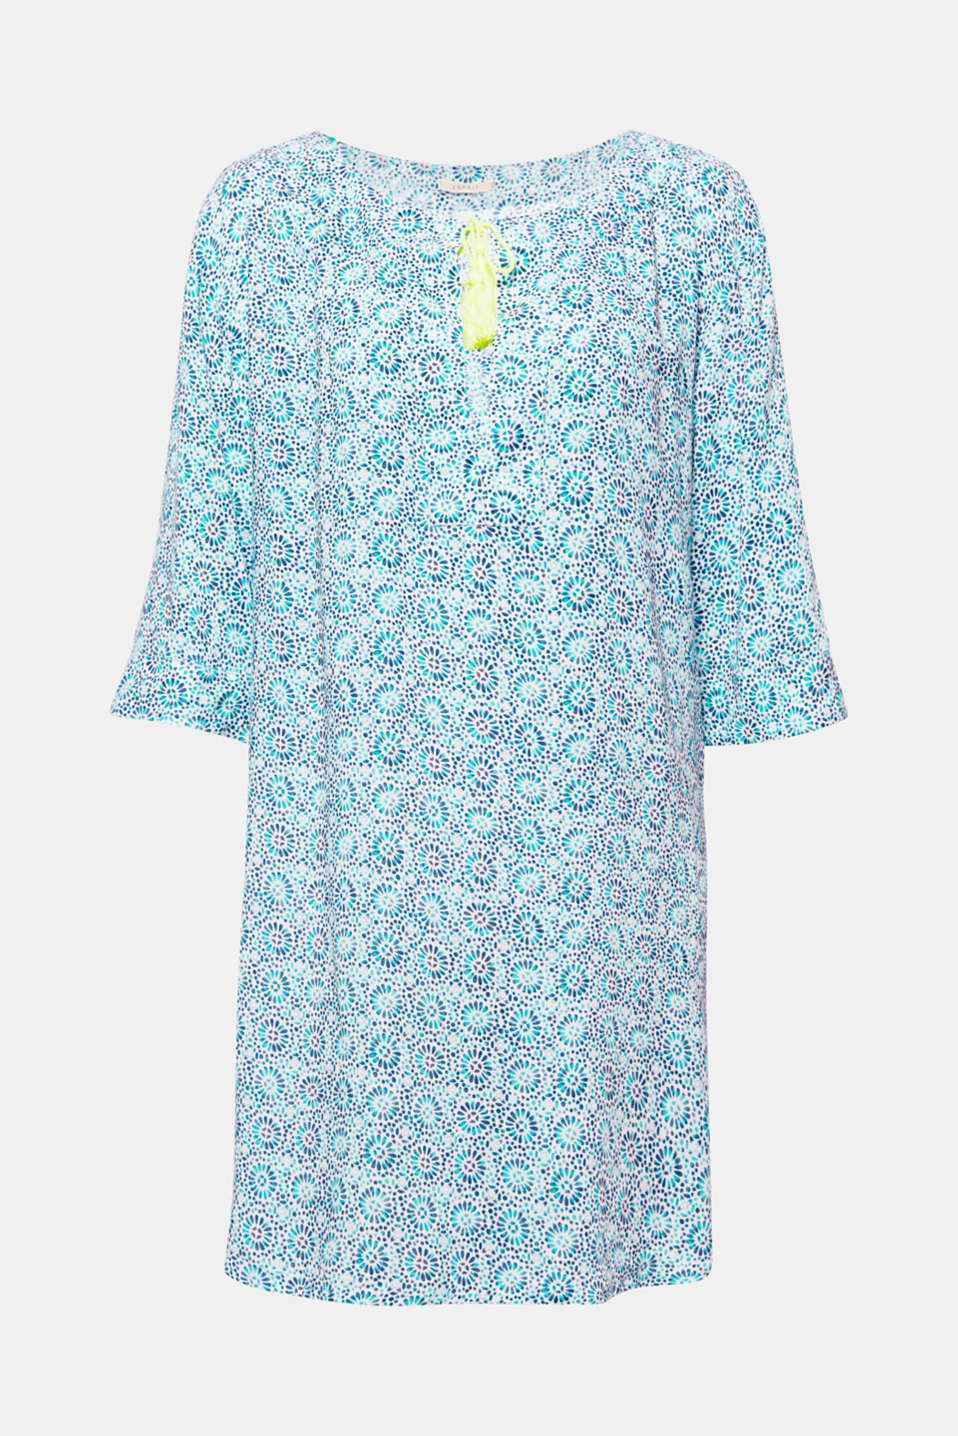 RAVINE BEACH collection – the perfect enhancement to your bikini or swimsuit: tunic with a decorative ornamental print